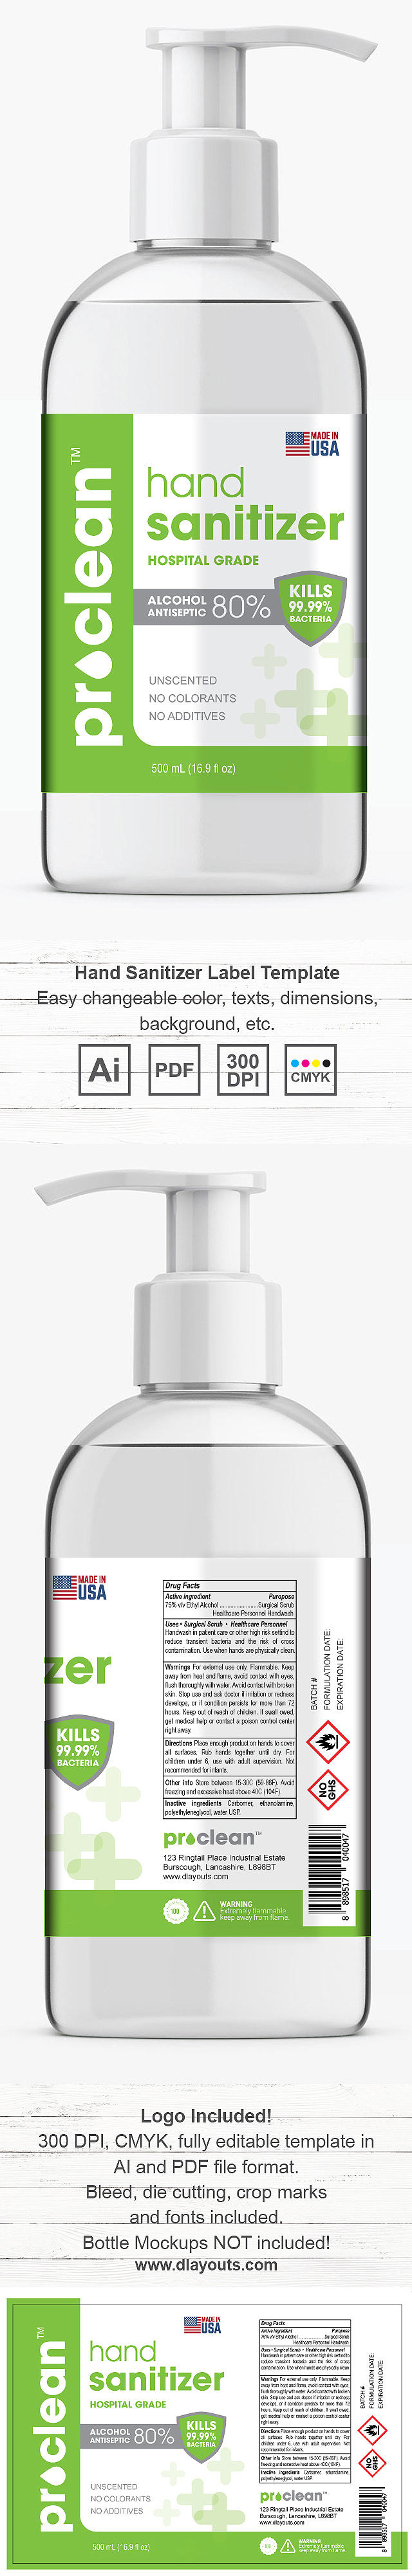 Hand Sanitizer Gel Label Template